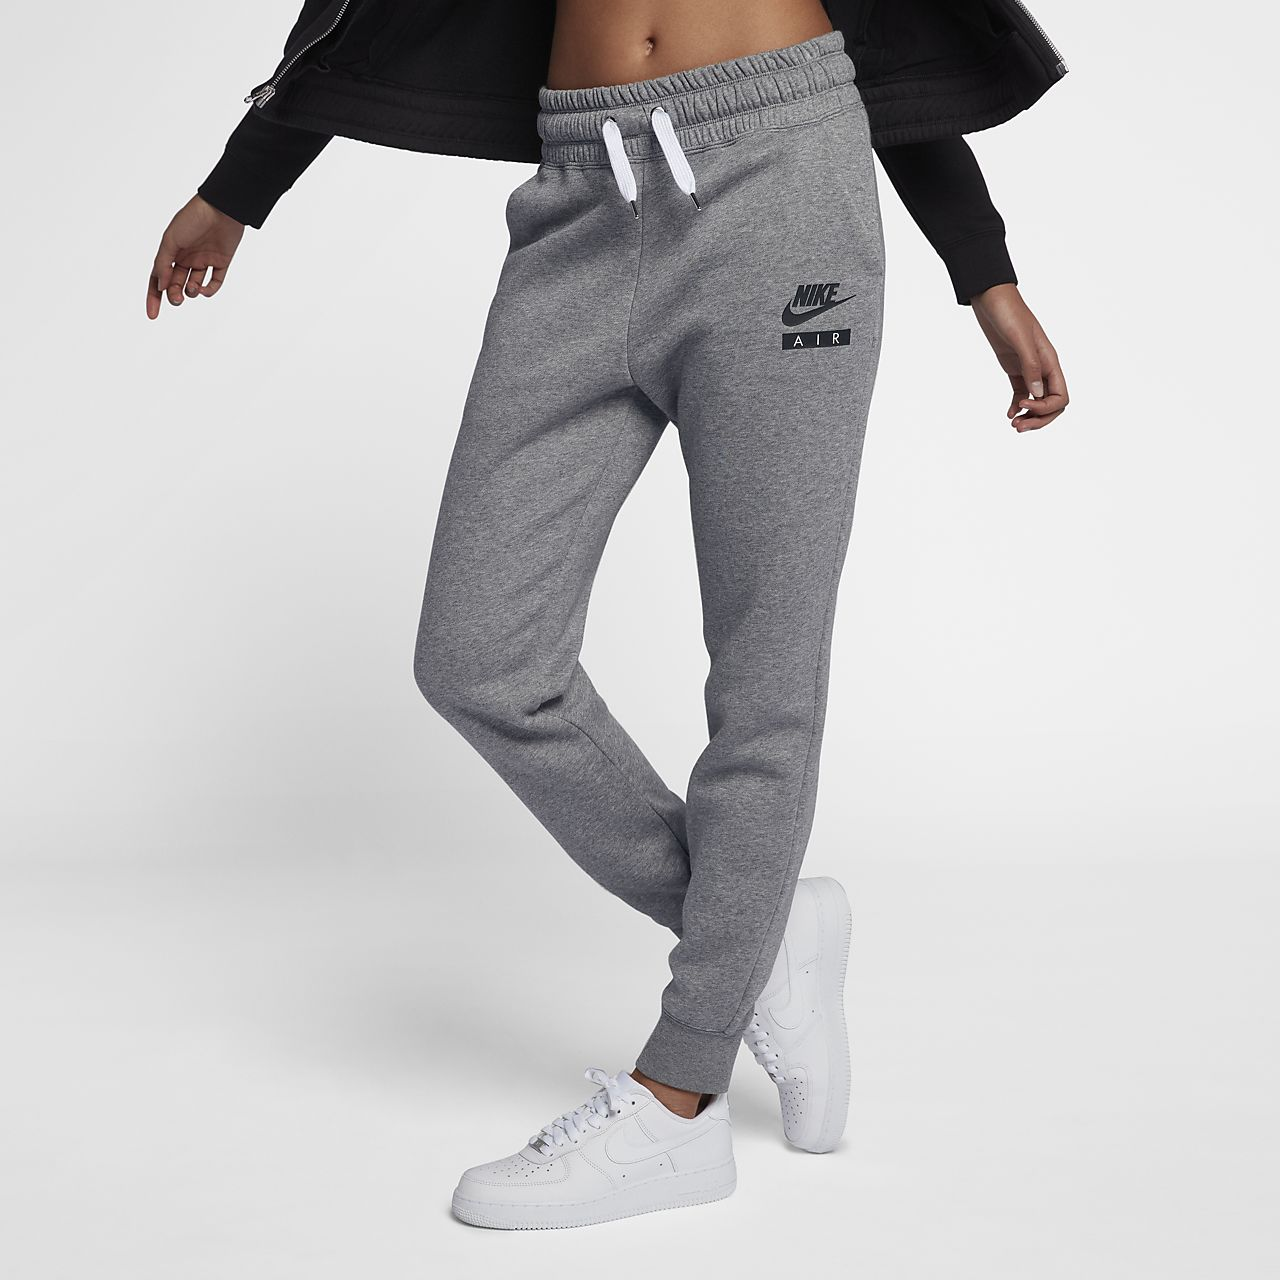 pantalon nike air noir